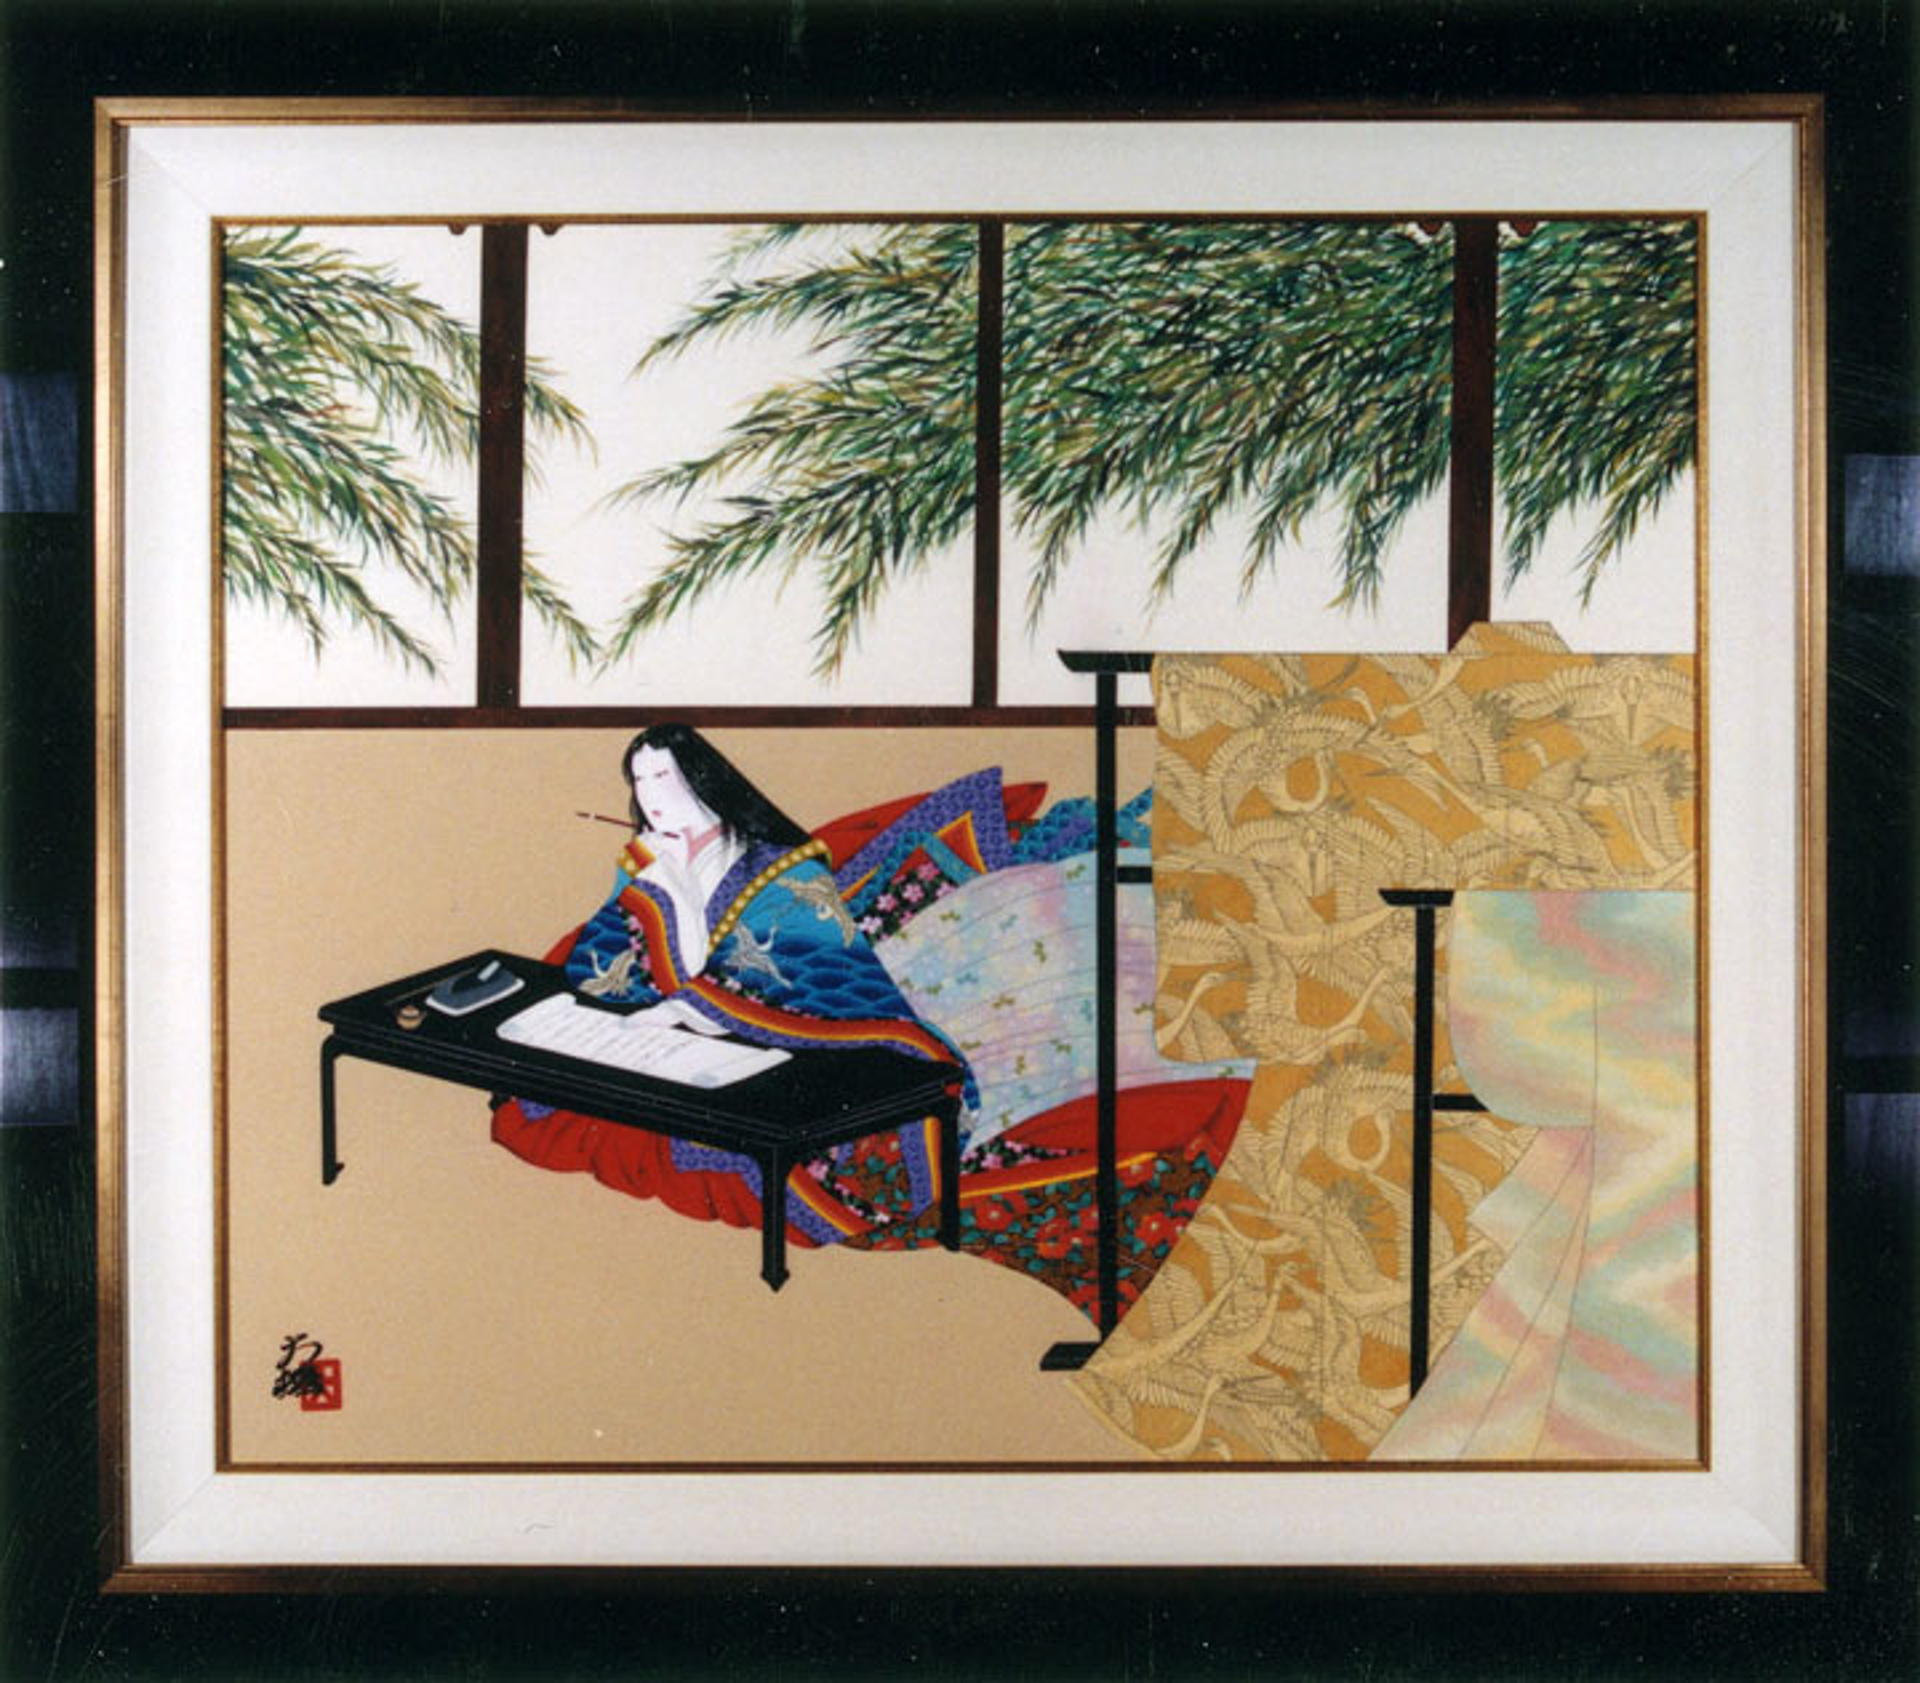 The Pillow Book - Sei Shonagon by Hisashi Otsuka